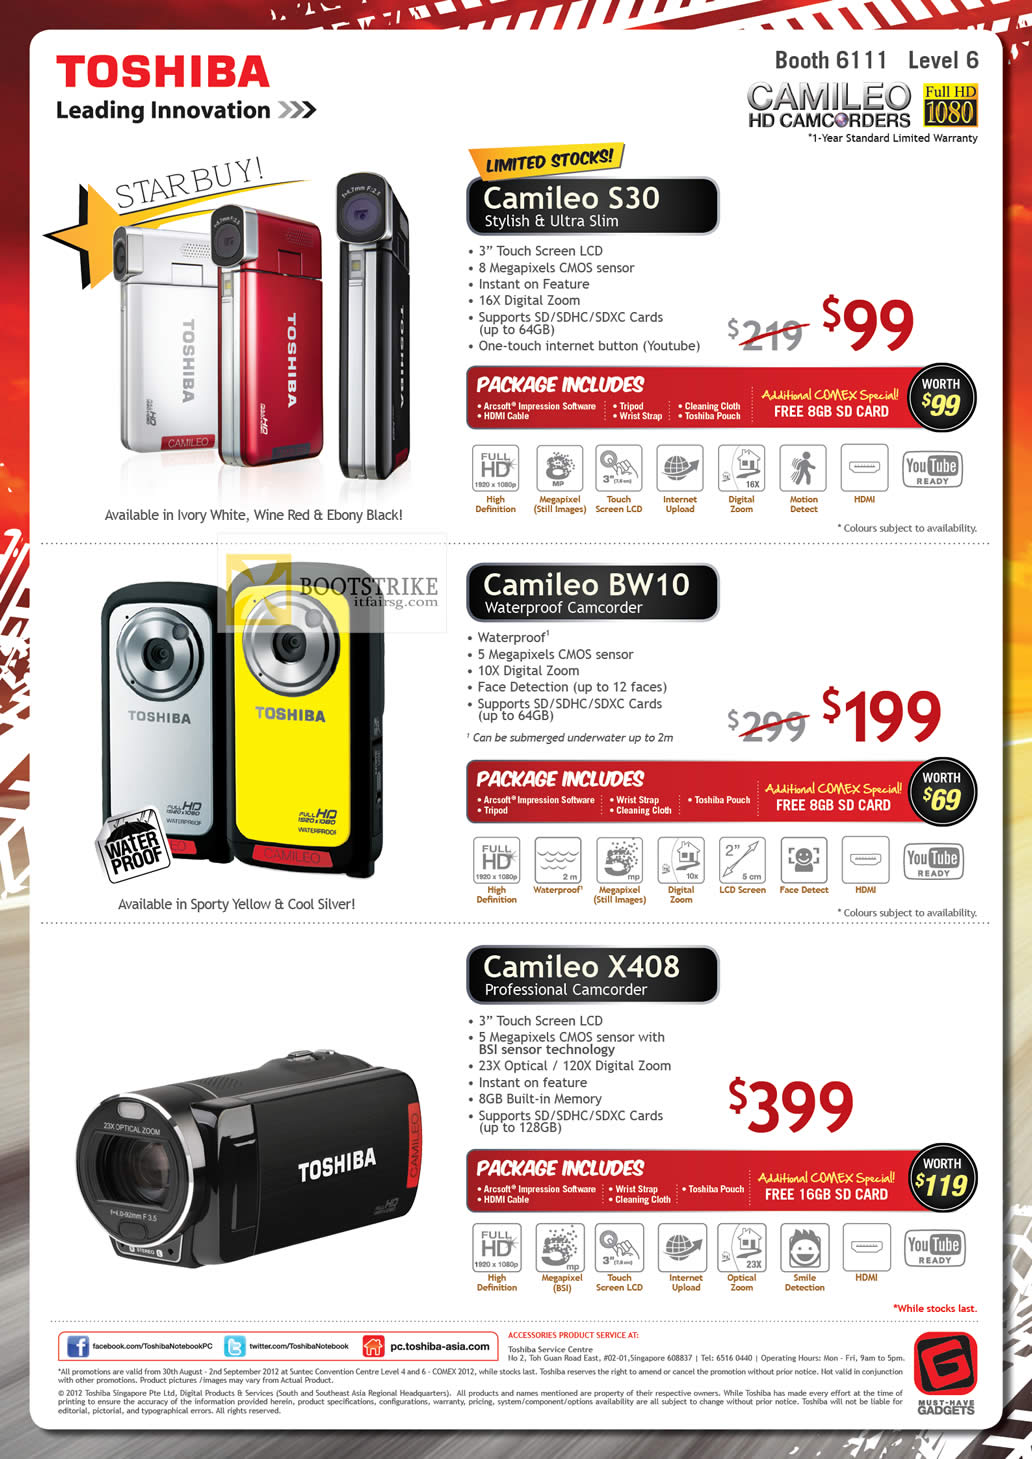 COMEX 2012 price list image brochure of Toshiba Video Camcorders Camileo S30, BW10, X408